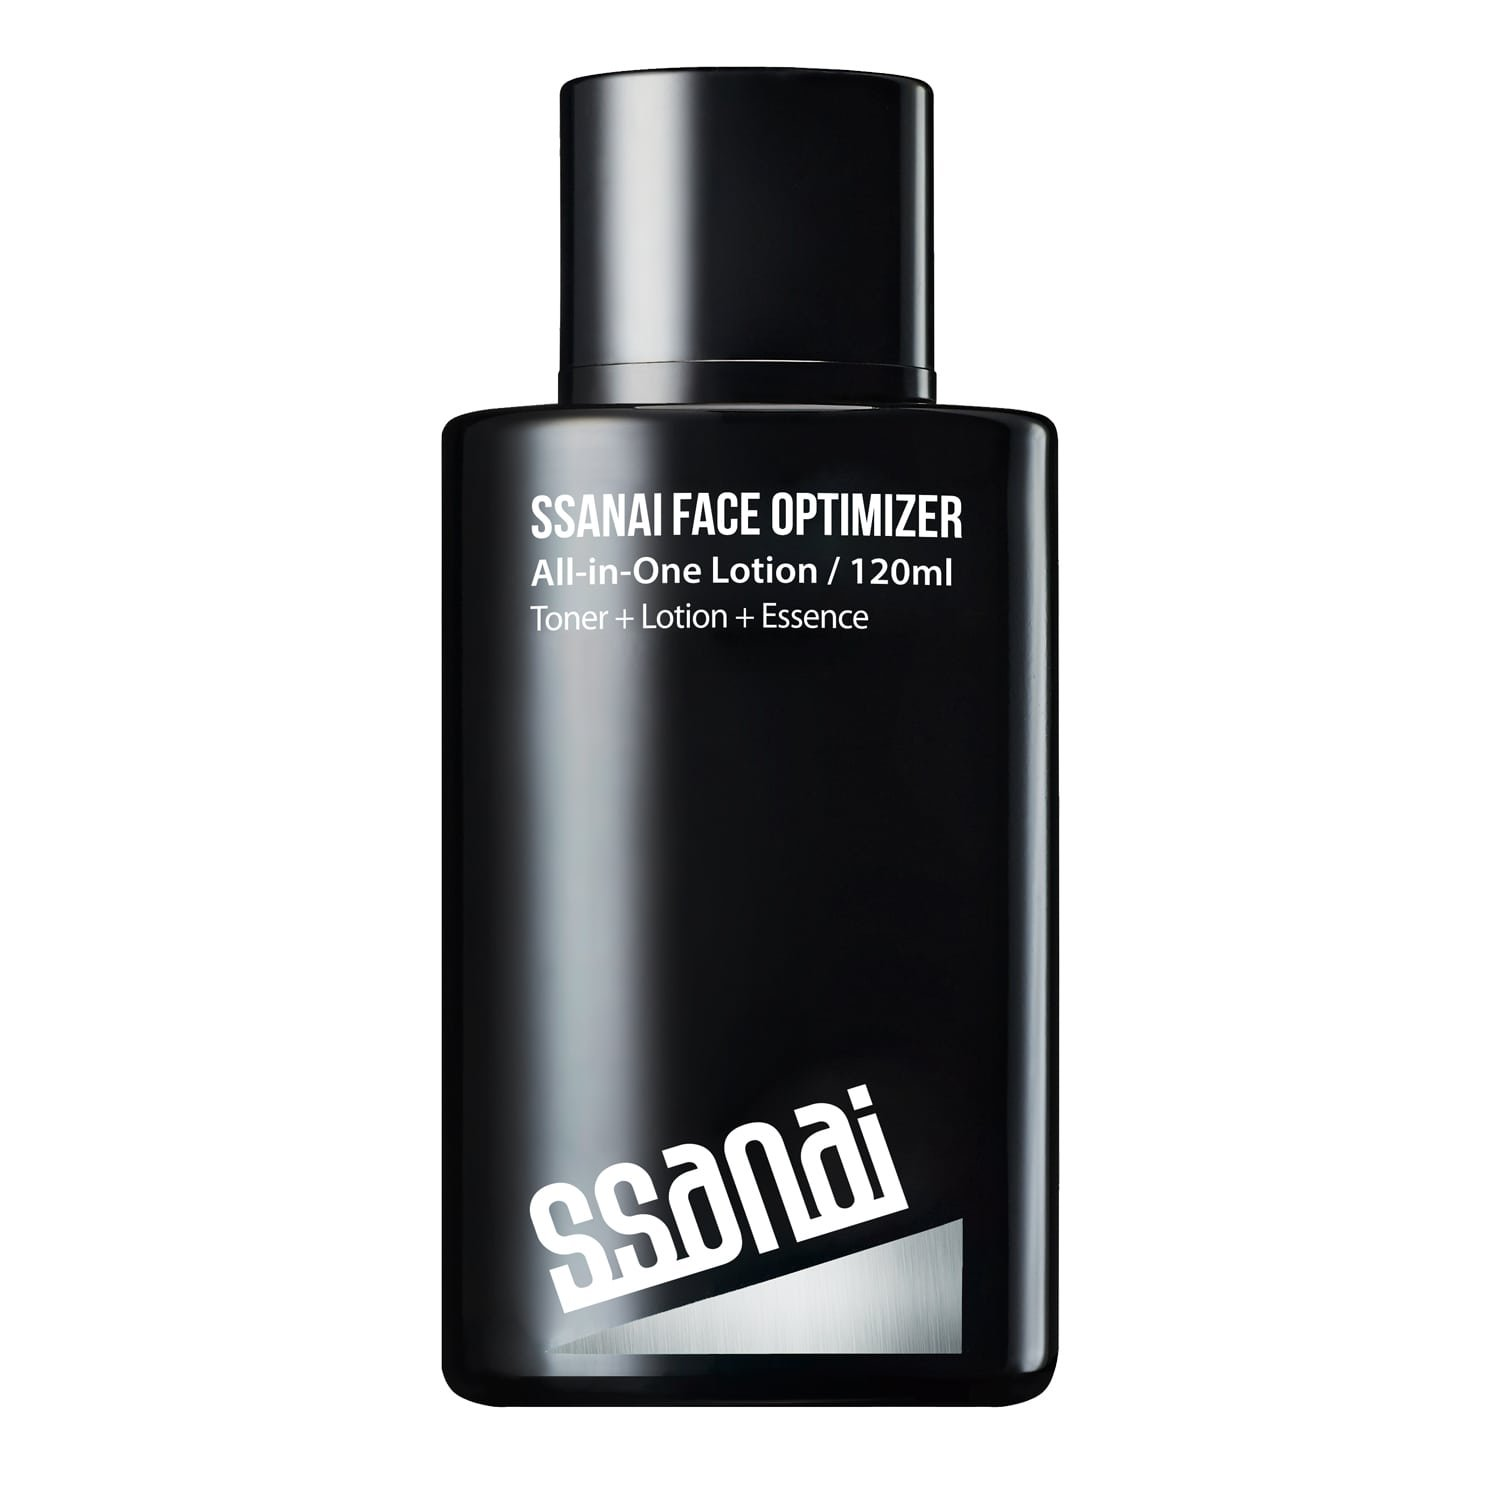 SSANAI Face Optimizer - Men's Maximum Hydration 3 in 1 Nourishing Lotion Face Moisturizer Treatment for Oily Dry Acne-Prone Skin Daily Facial Cream Aftershave with Organic Natural Ingredients